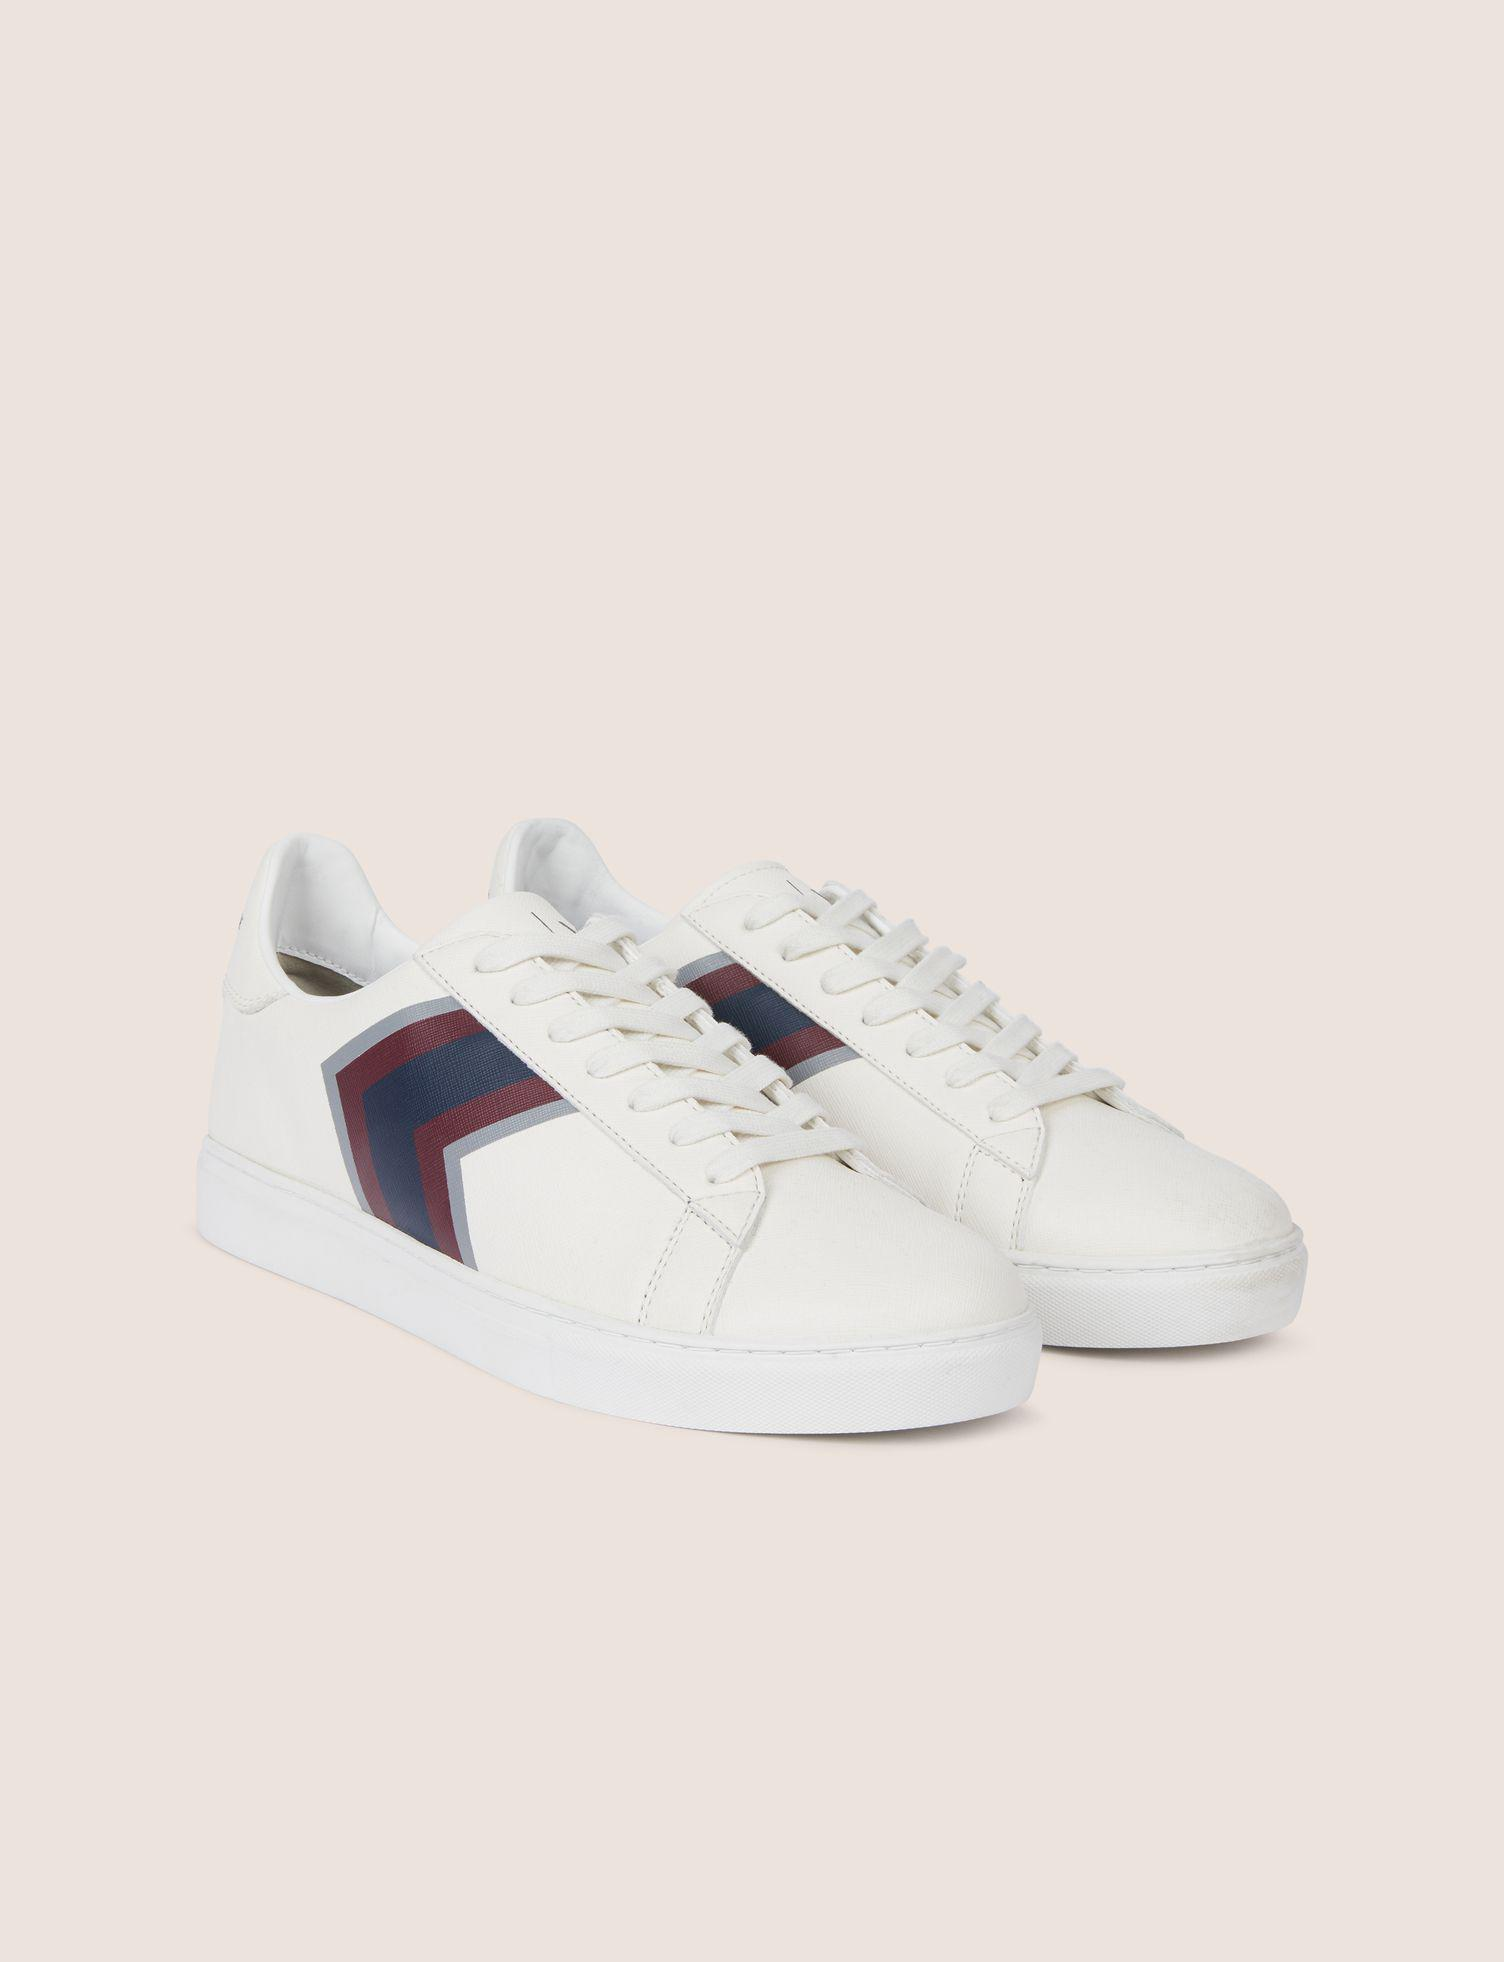 Lyst - Armani Exchange Textured Chevron Low-top Sneaker in White for Men 447f67e5668